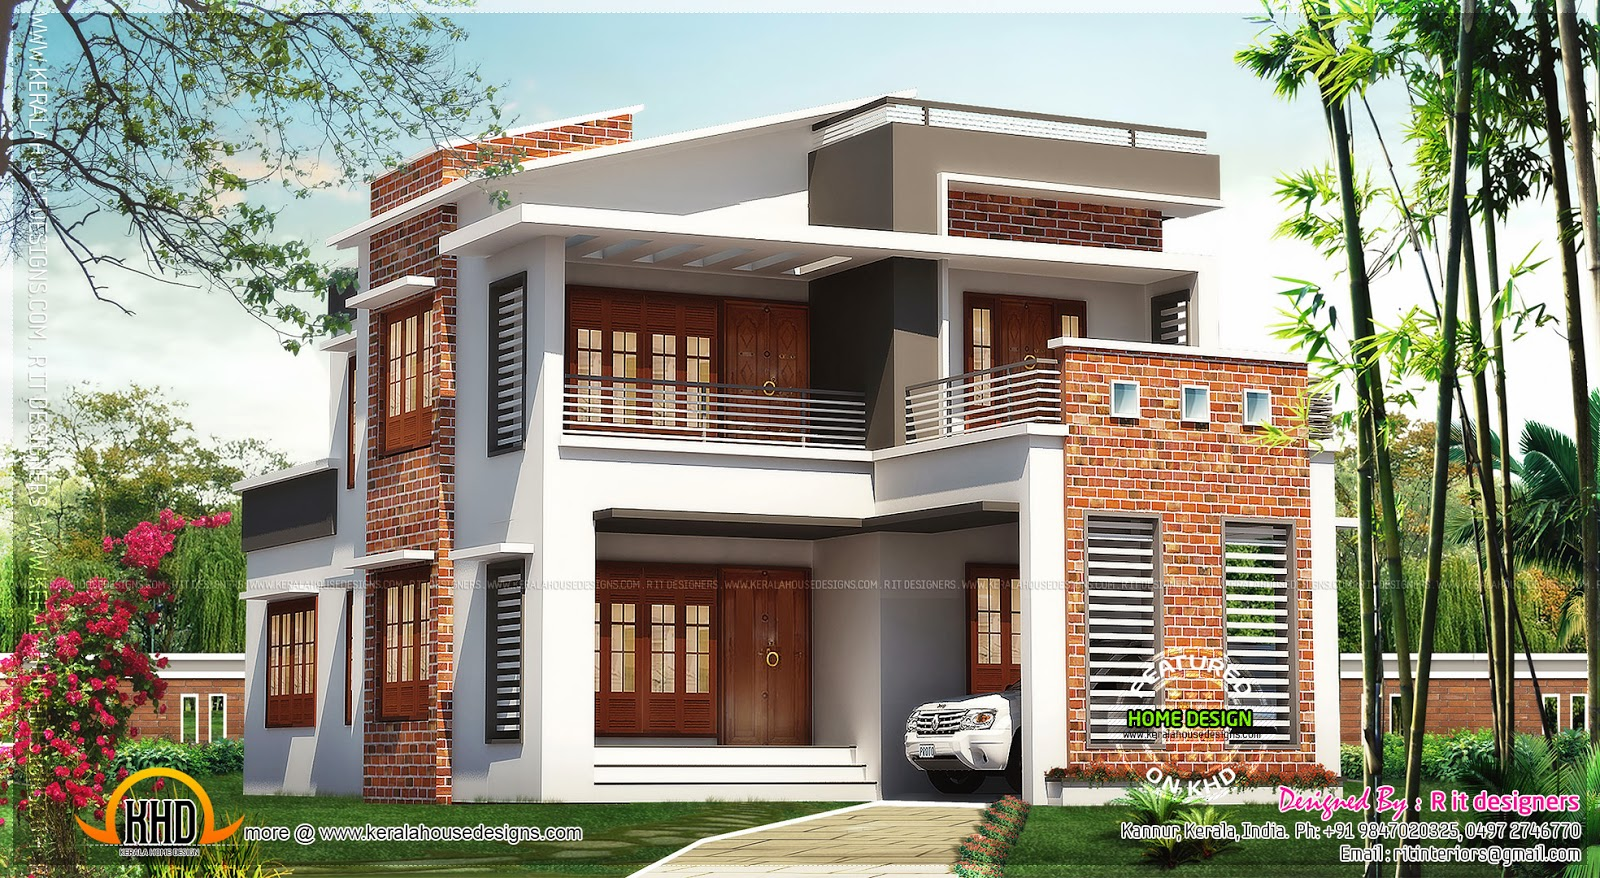 Brick mix house exterior design kerala home design and for Home exterior designs